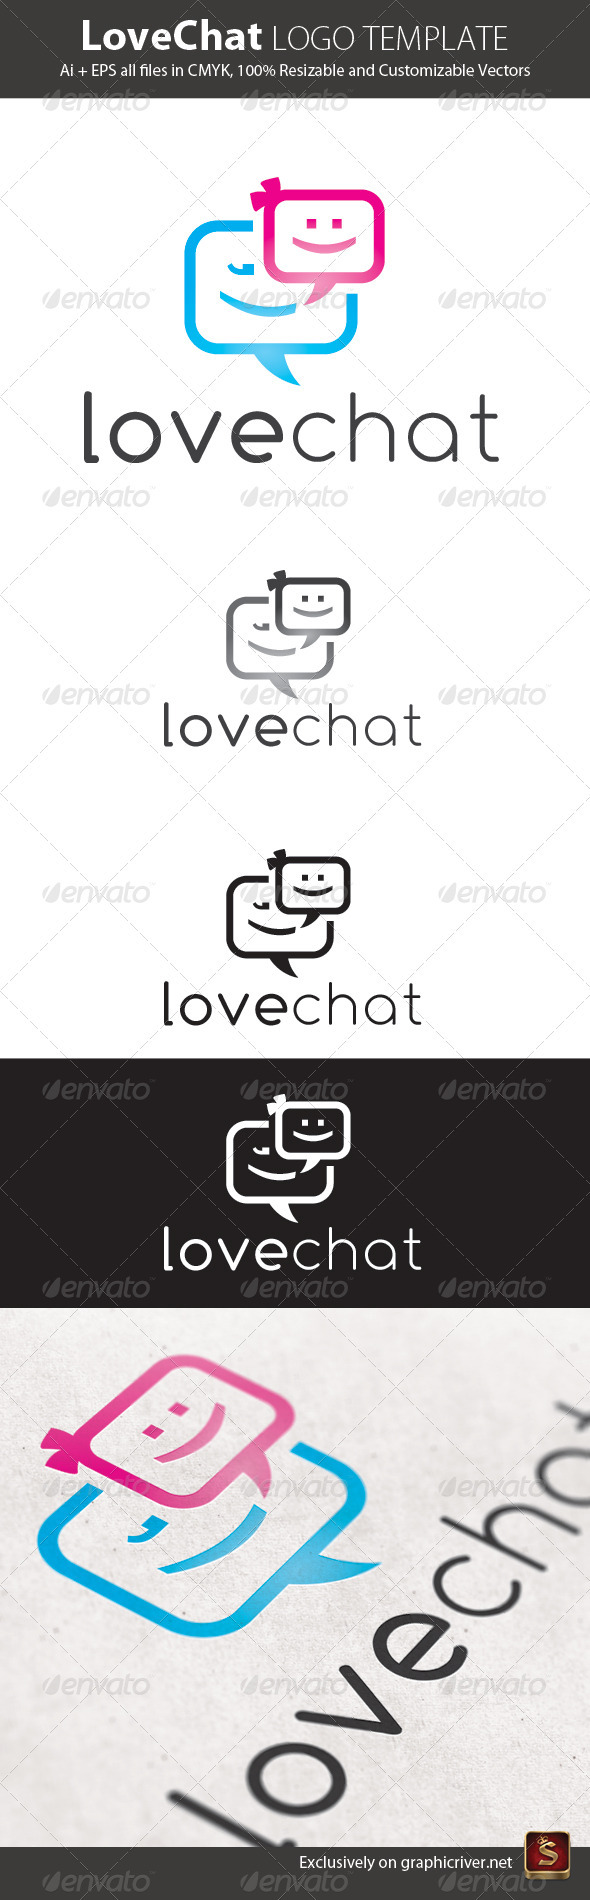 Love Chat Logo Template - Vector Abstract